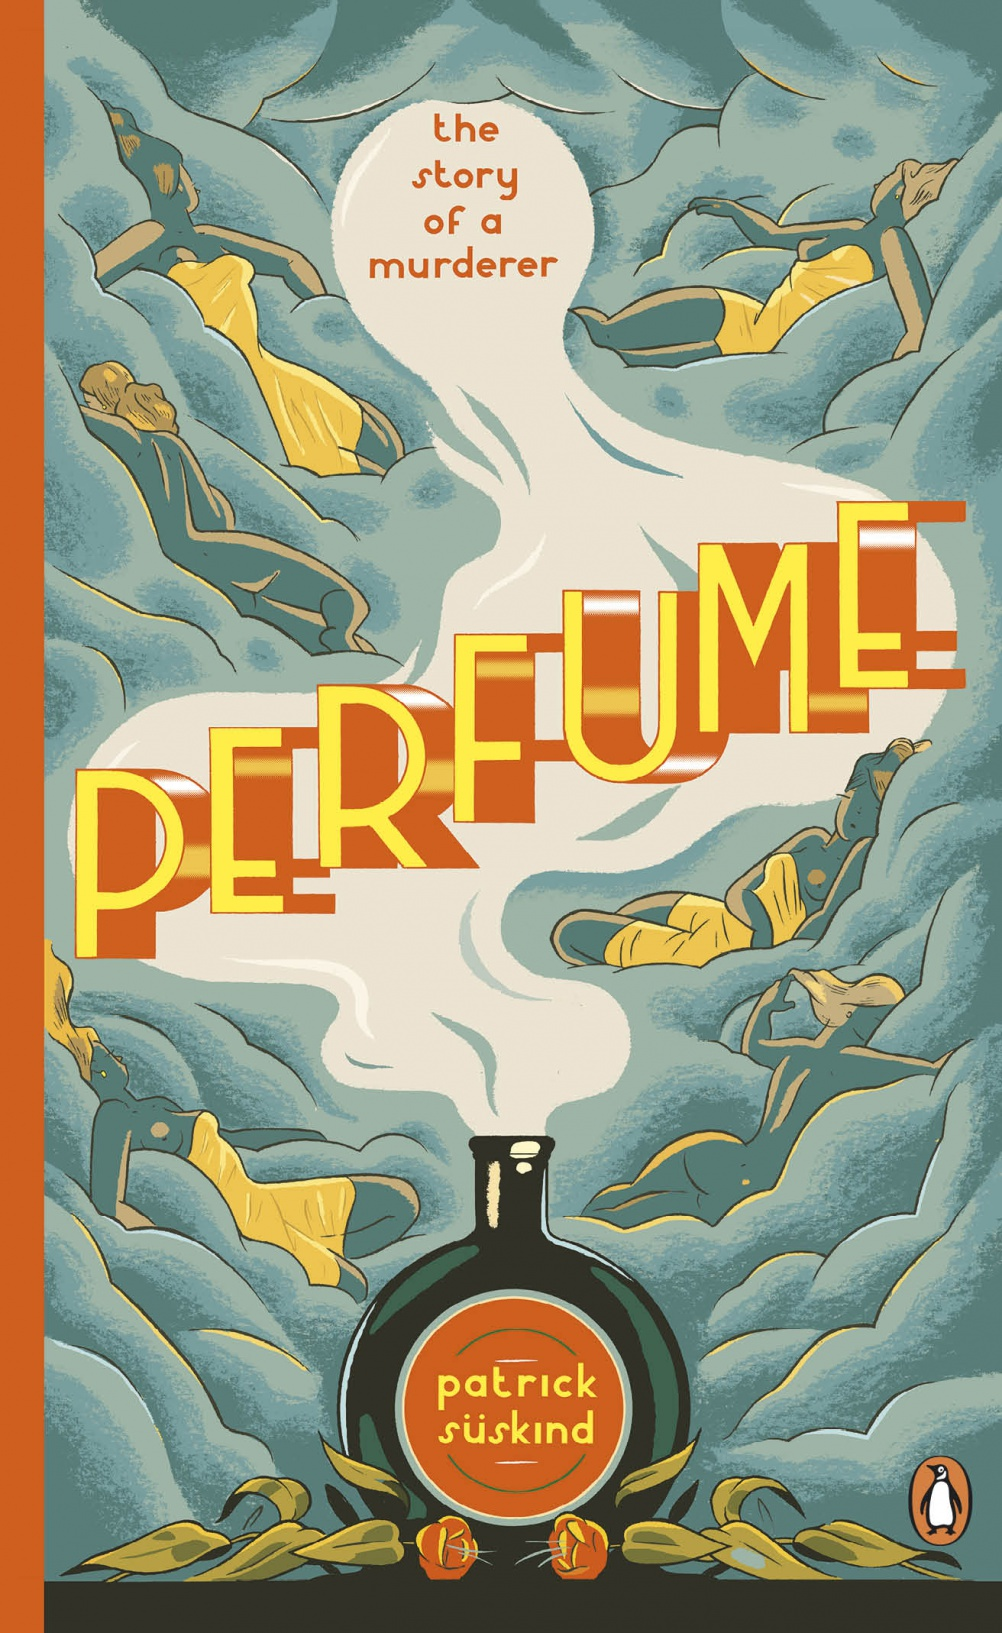 Perfume by Patrick Susskind. Cover by  Jan Van Der Veken